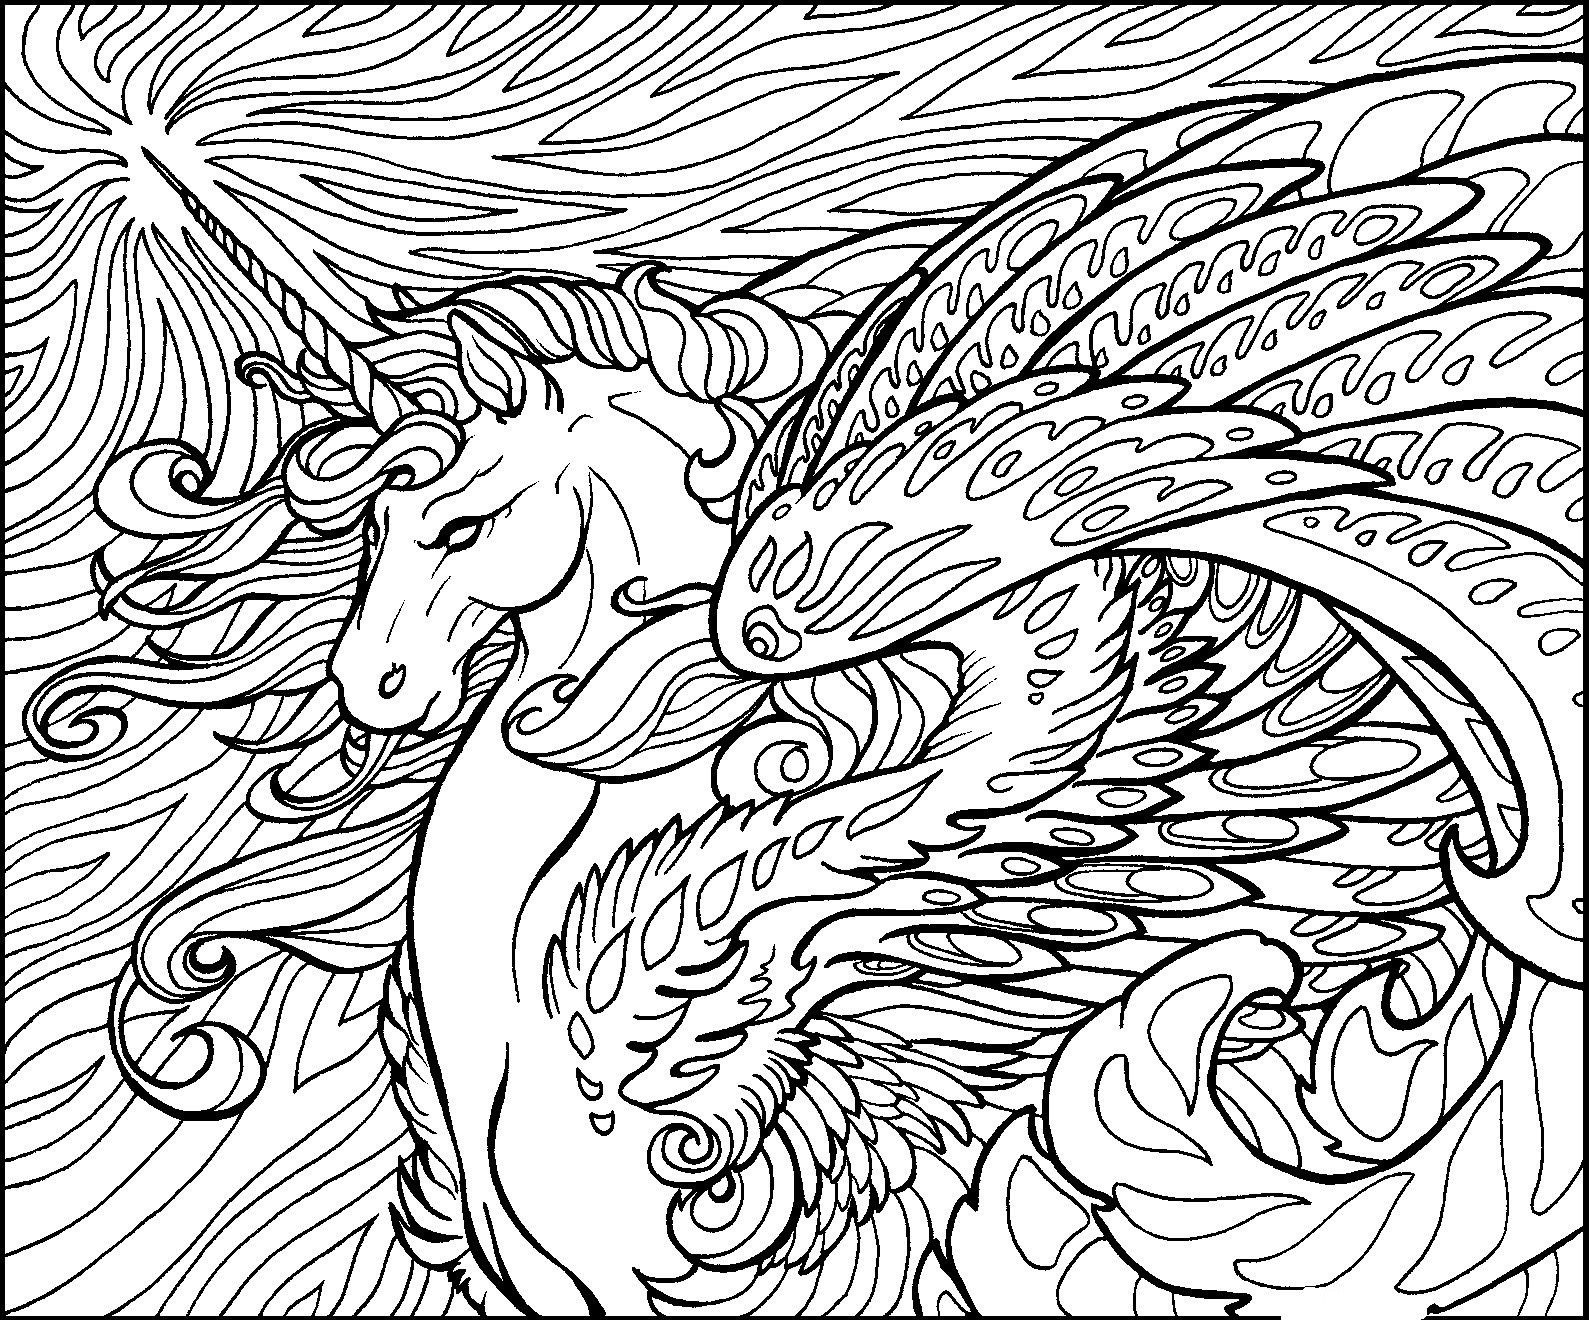 25+ Marvelous Photo of Dragon Coloring Pages For Adults - birijus.com